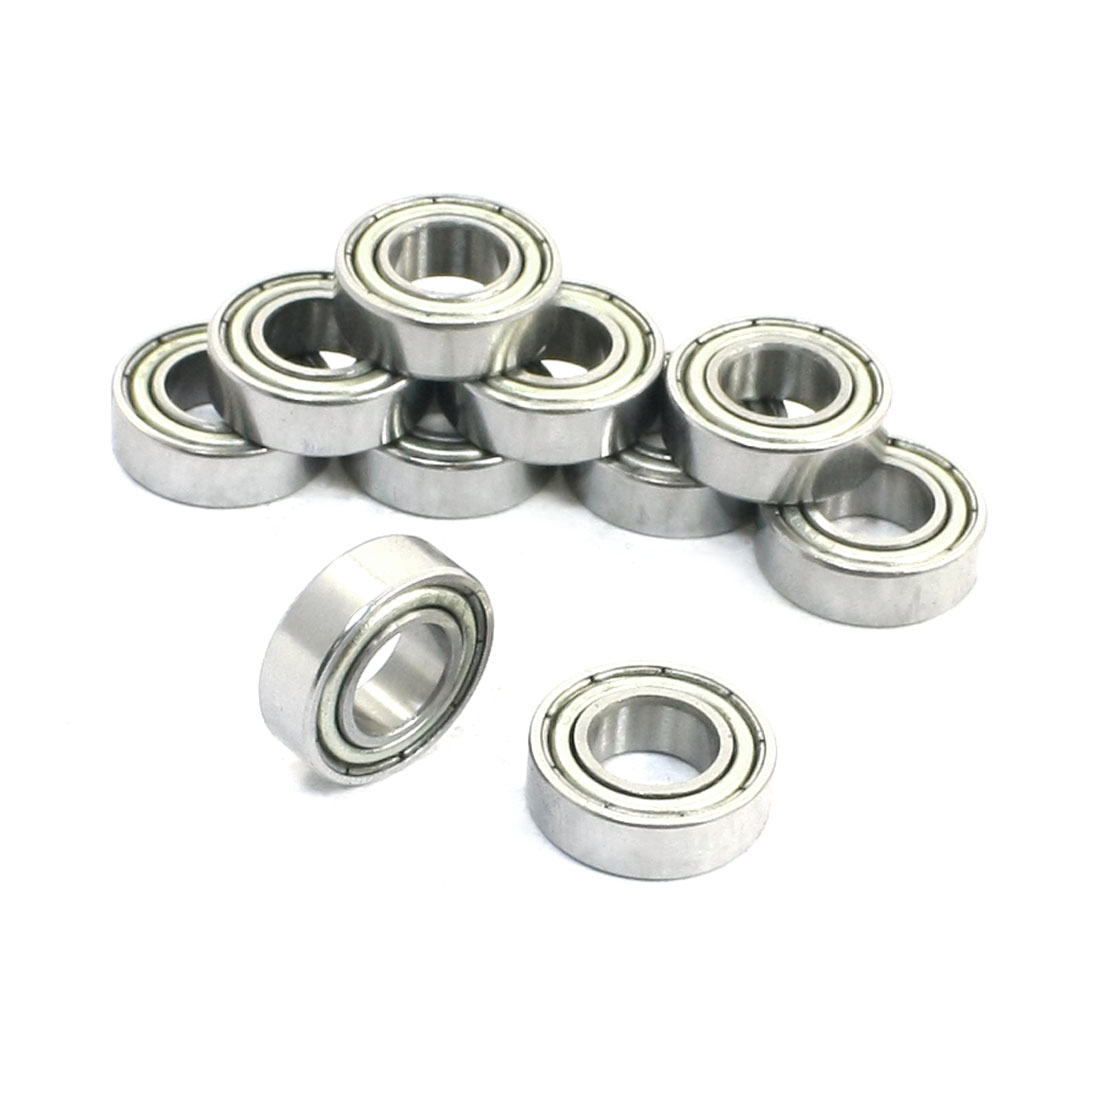 10 Pcs 688Z Metal Sealed Deep Groove Radial Ball Bearings 8 x 16 x 5mm